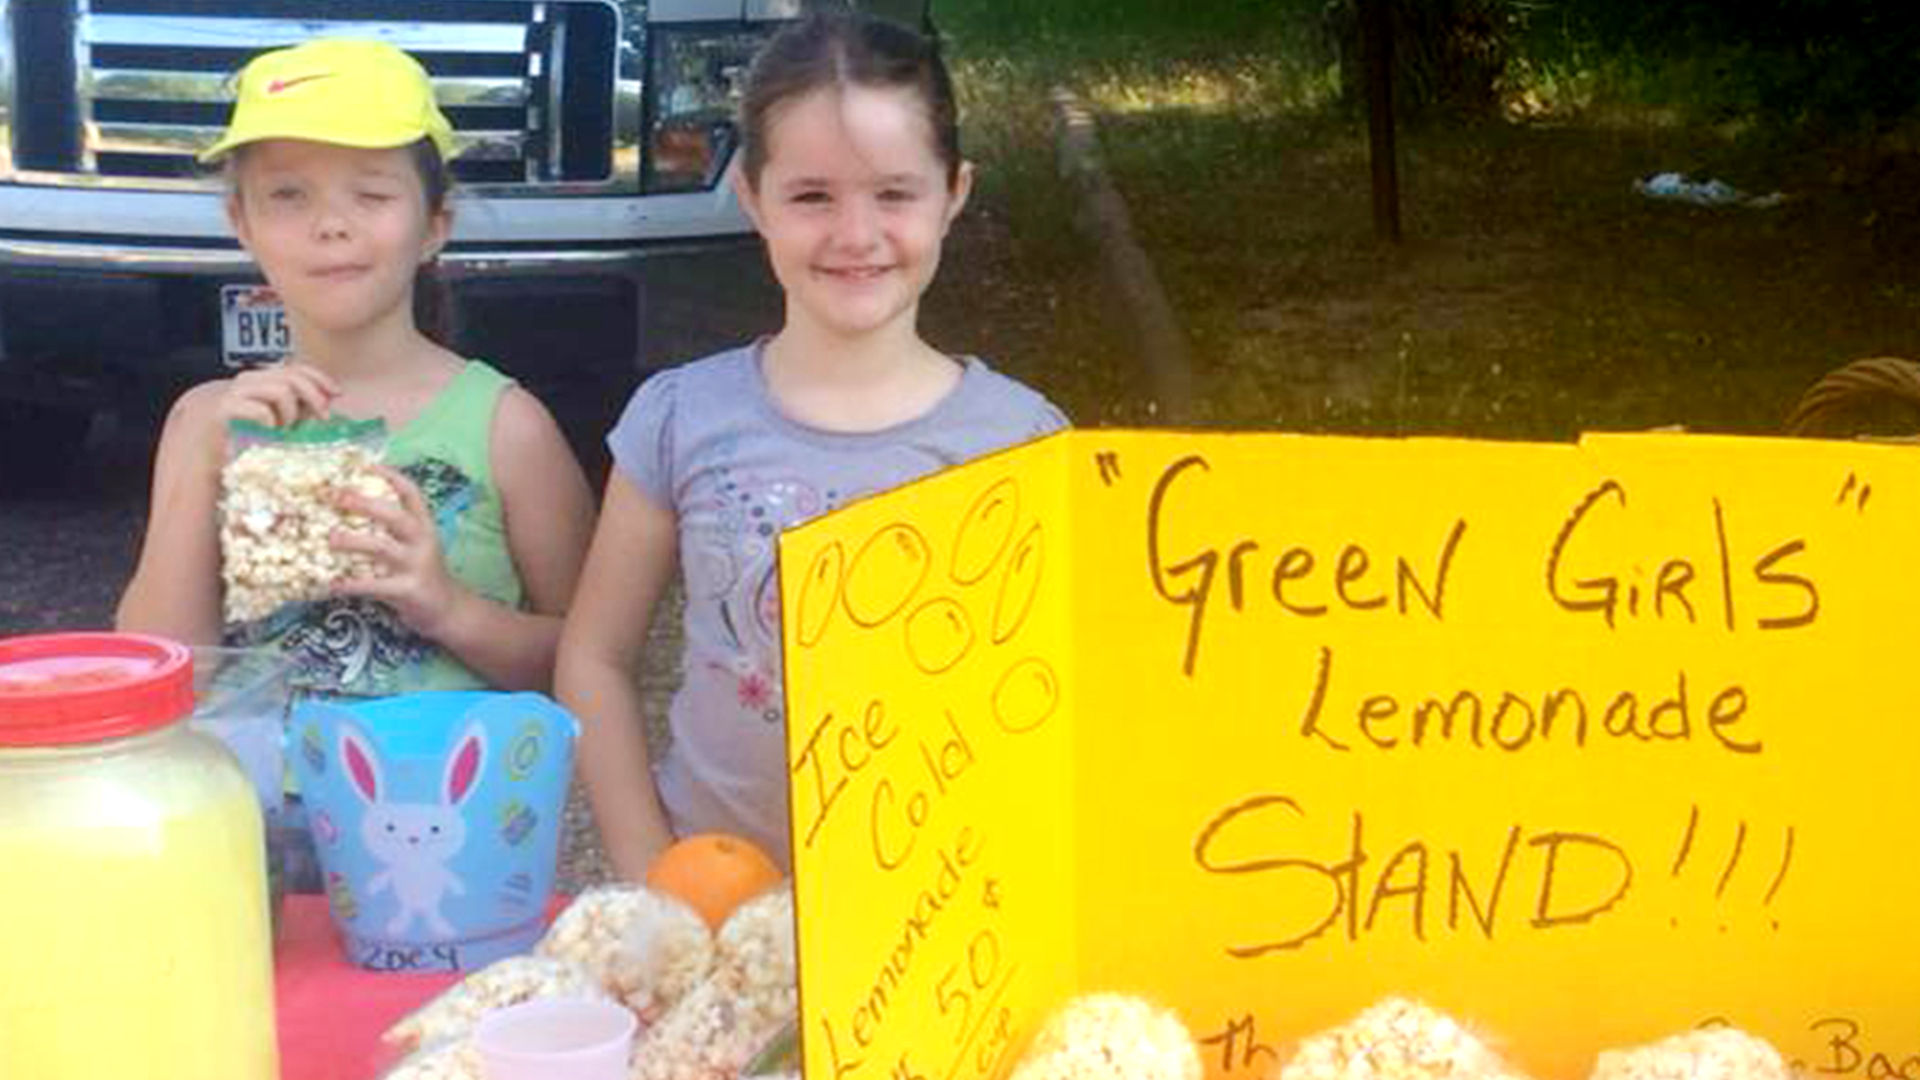 What To Do When Legal Issues Sour Your Lemonade Stand